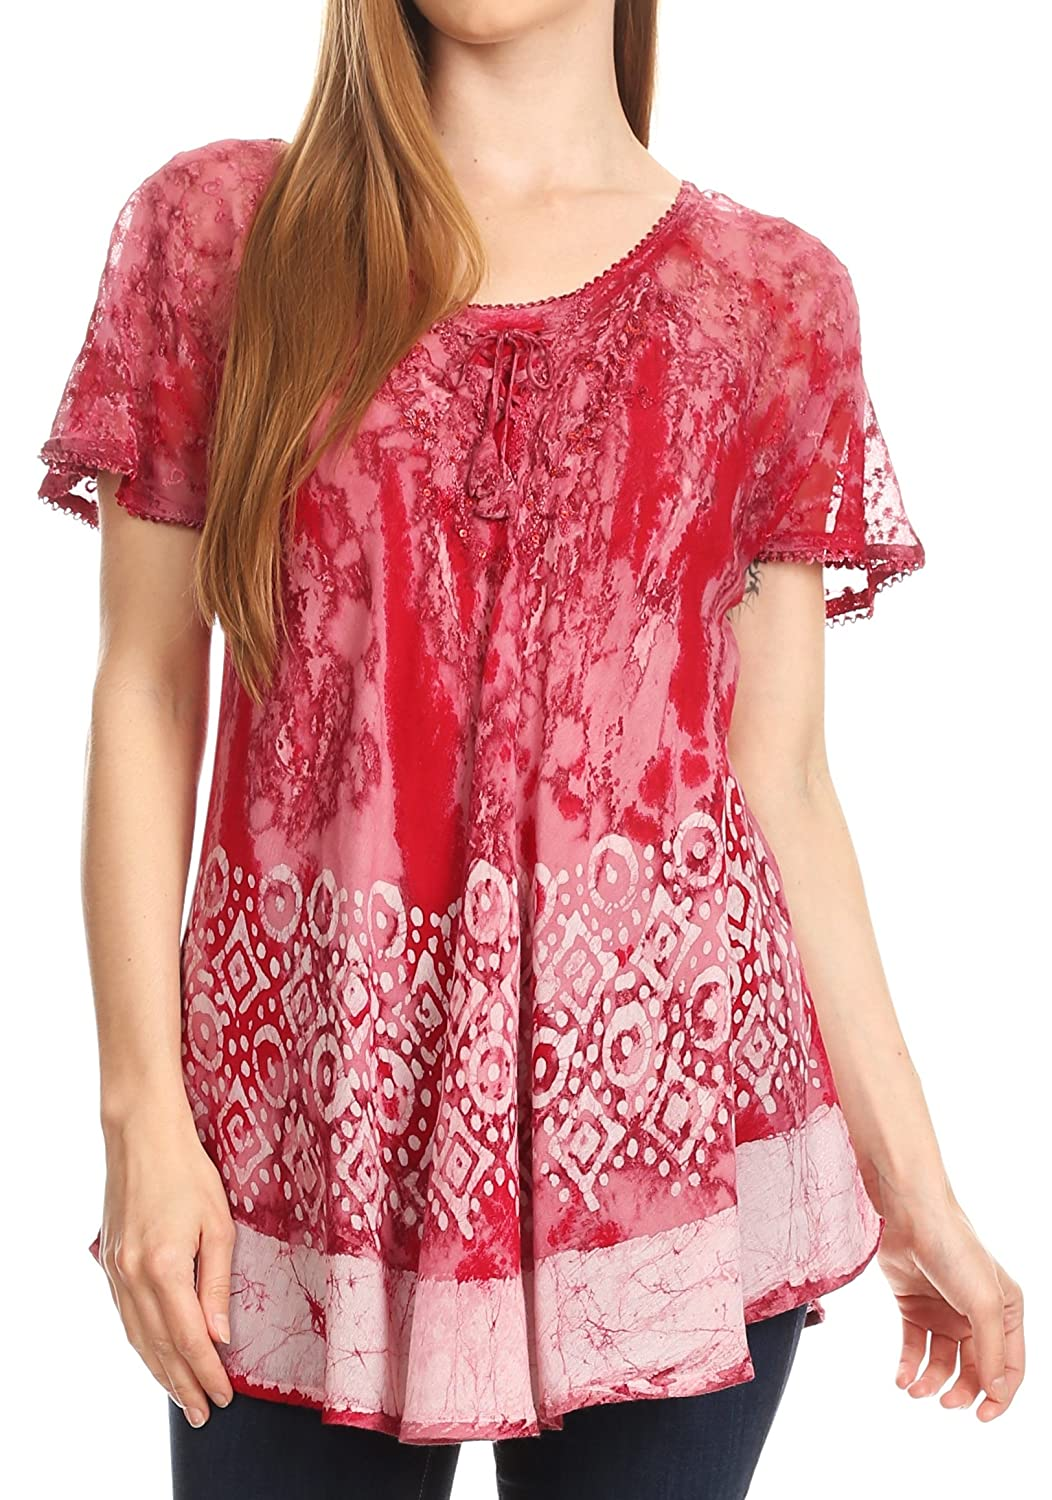 b1fd9becf917c Sakkas Sara Womens Flowy Peasant Short Sleeve Top Blouse Tie-dye Batik  Embroidery at Amazon Women s Clothing store